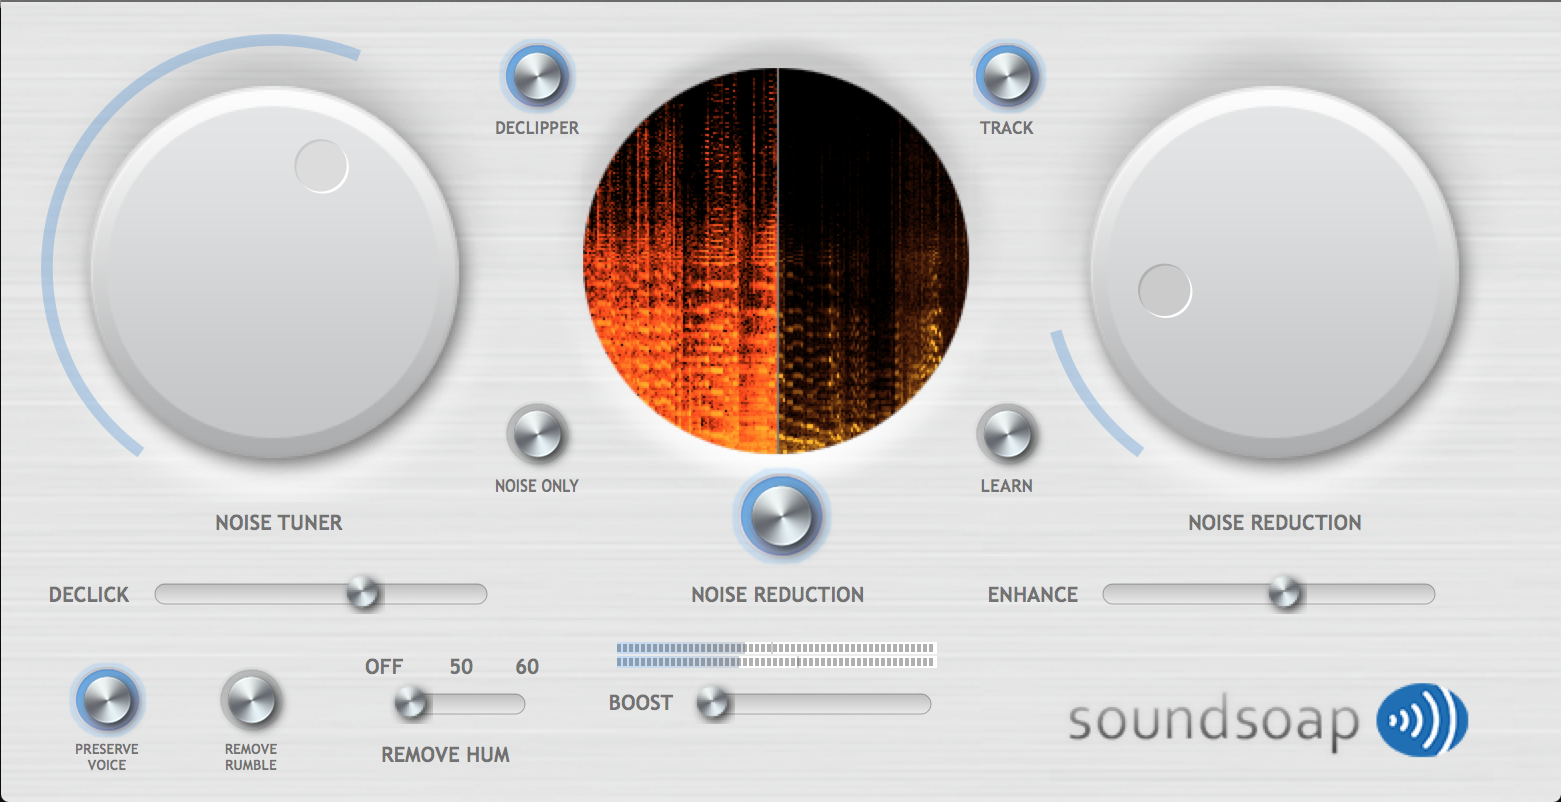 SoundSoap 5 - New Version includes Automatic Noise Detection and More Image